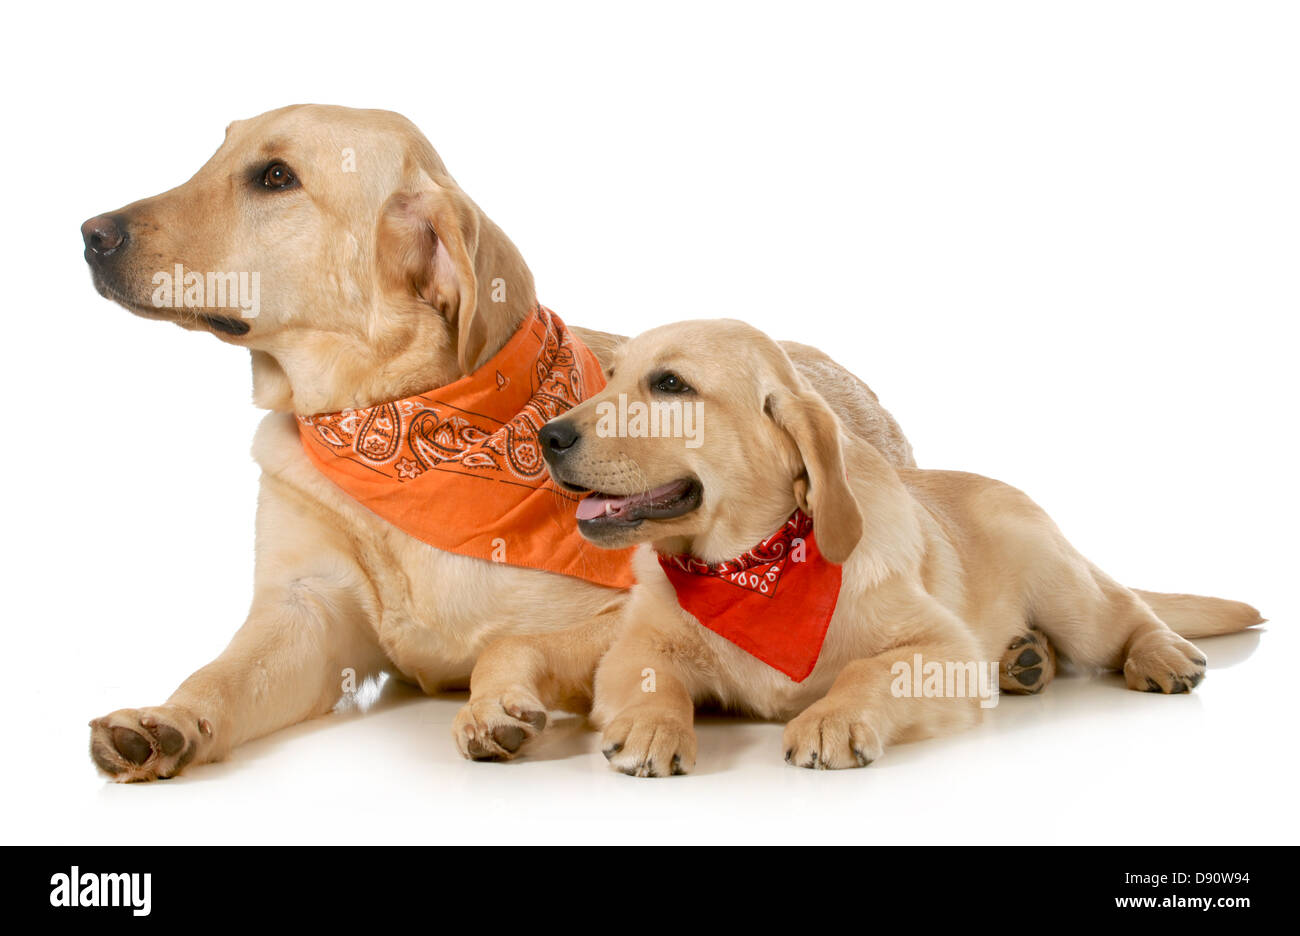 adult dog and puppy wearing bandanas laying down looking off to the side isolated on white background - Stock Image